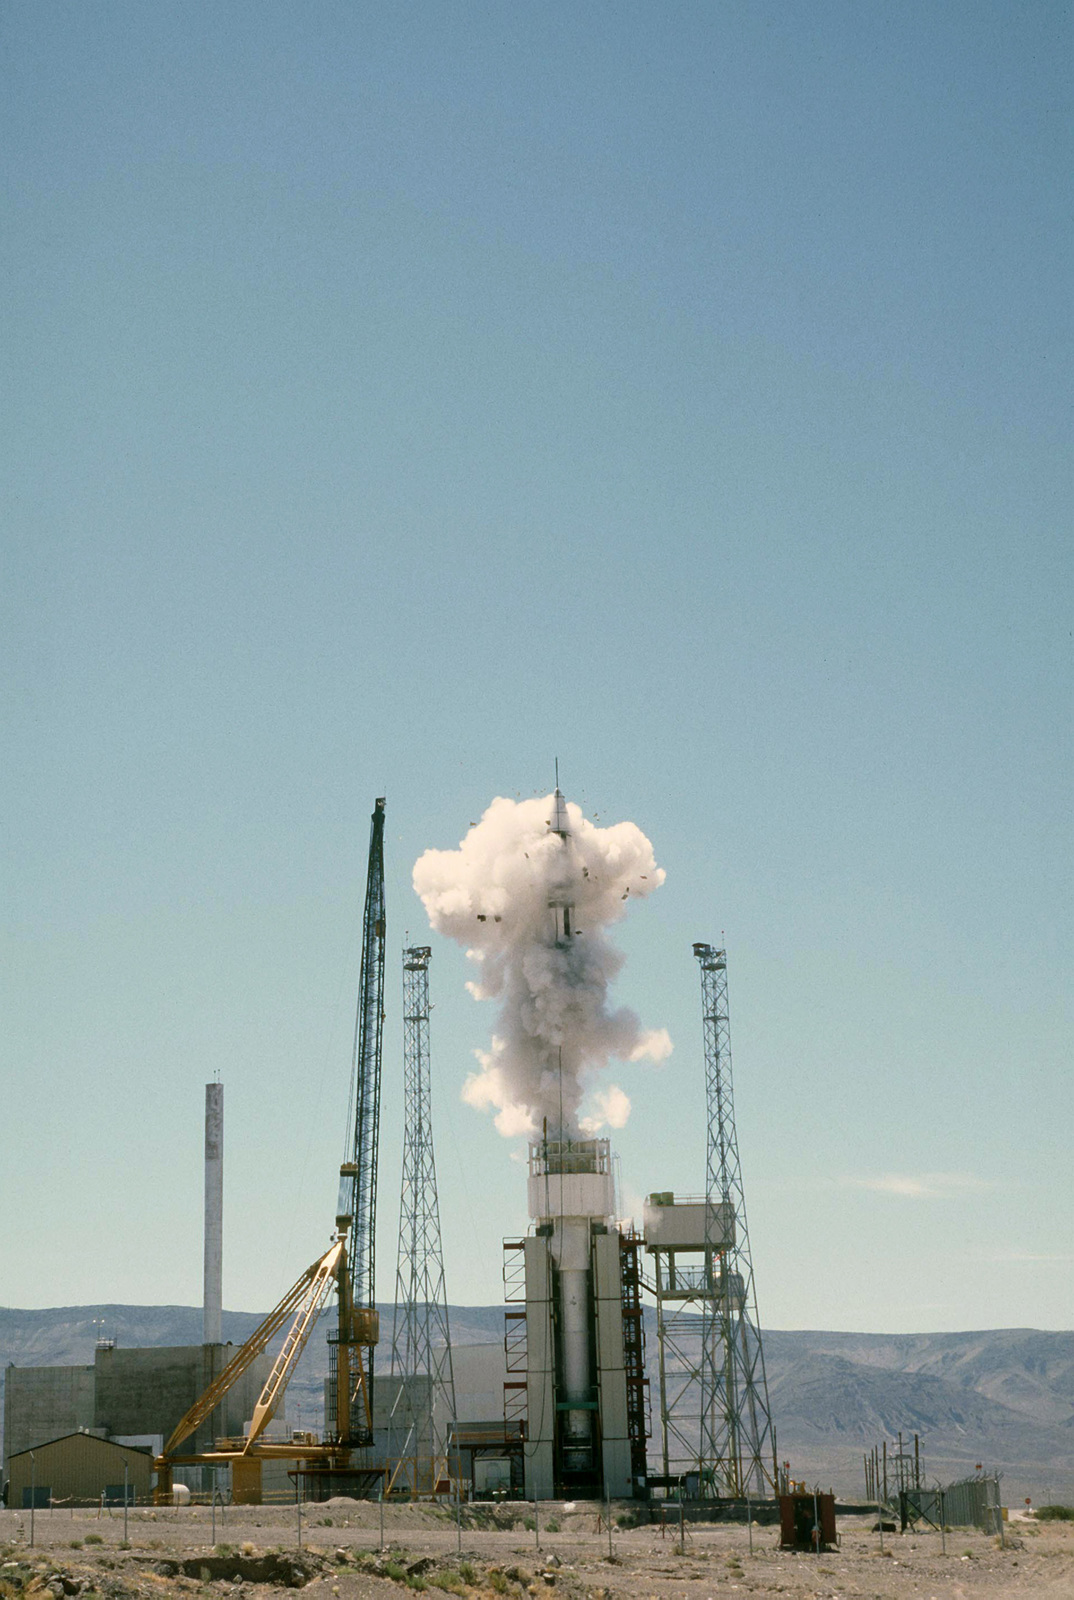 An LGM-118A Peacekeeper intercontinental ballistic missile is ejected from a launch canister during a test launch. (First view in a series of four)